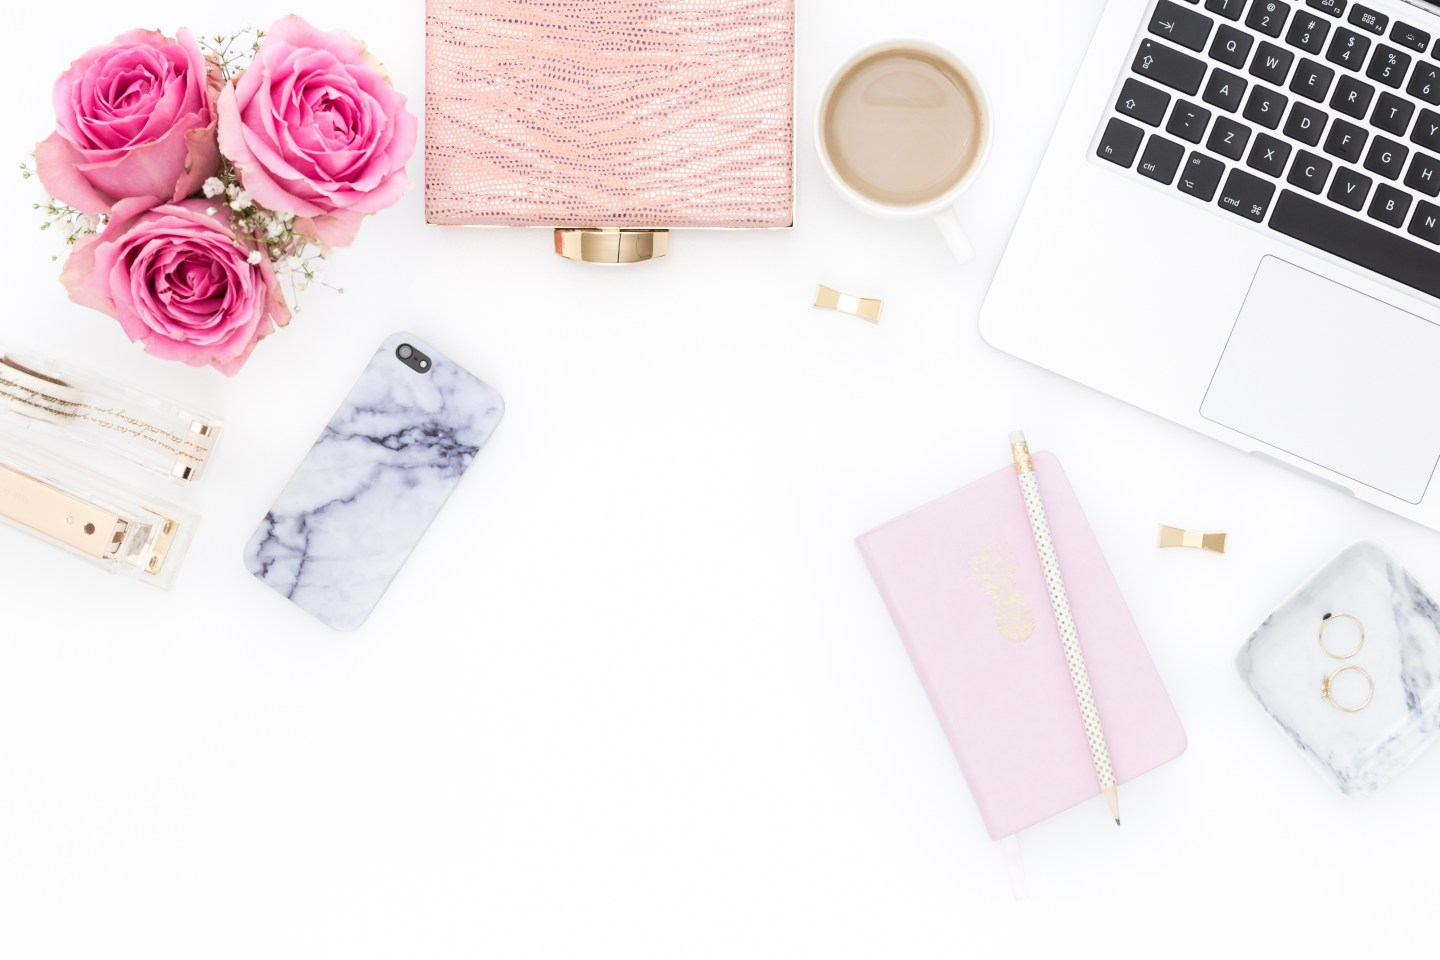 How I Turned My Blog Into a Career – In Just 6 Months!